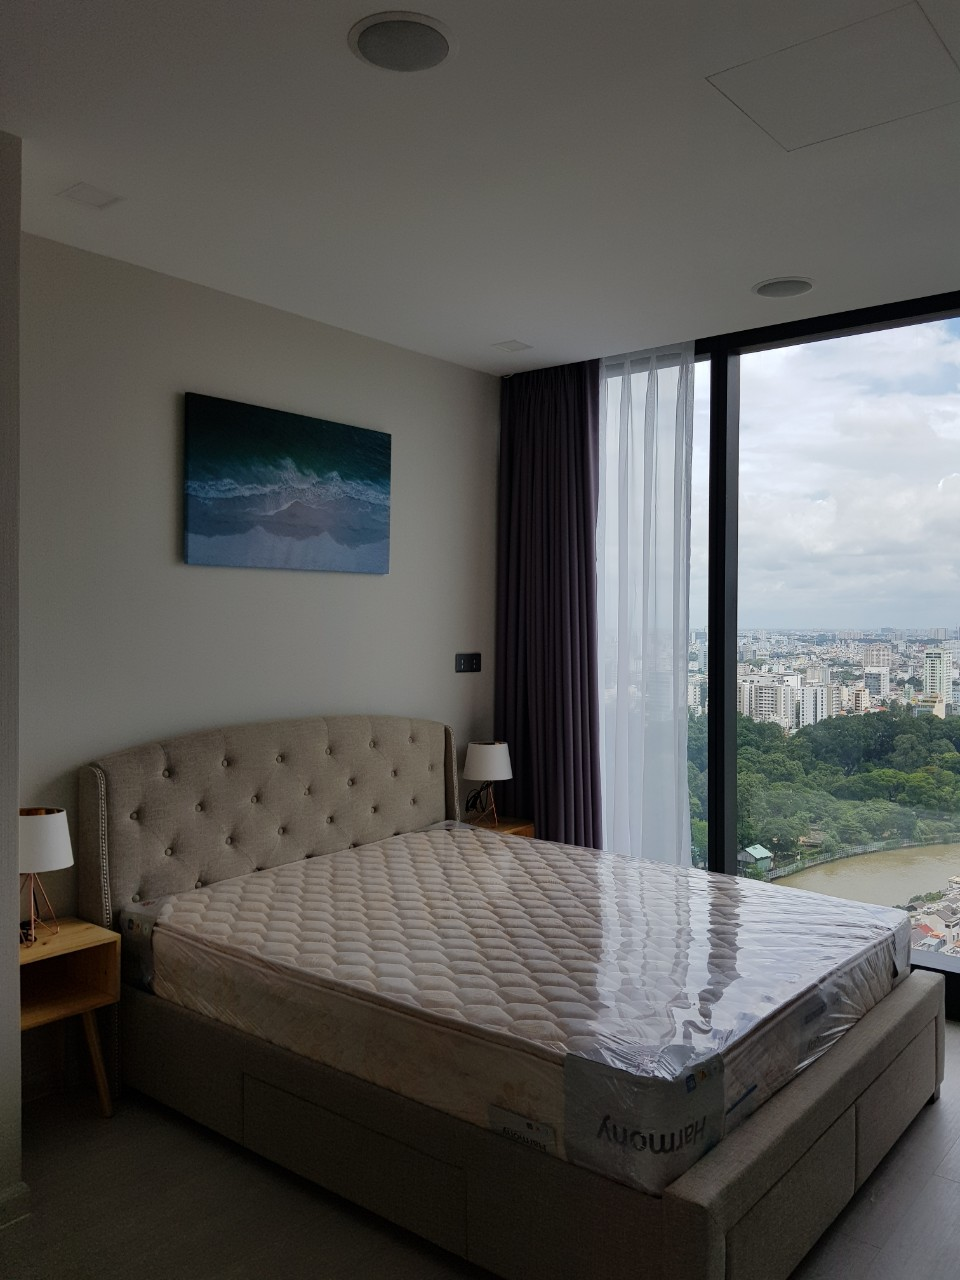 vinhomes golden river apartment for rent in district 1 hcmc D102272 (4)